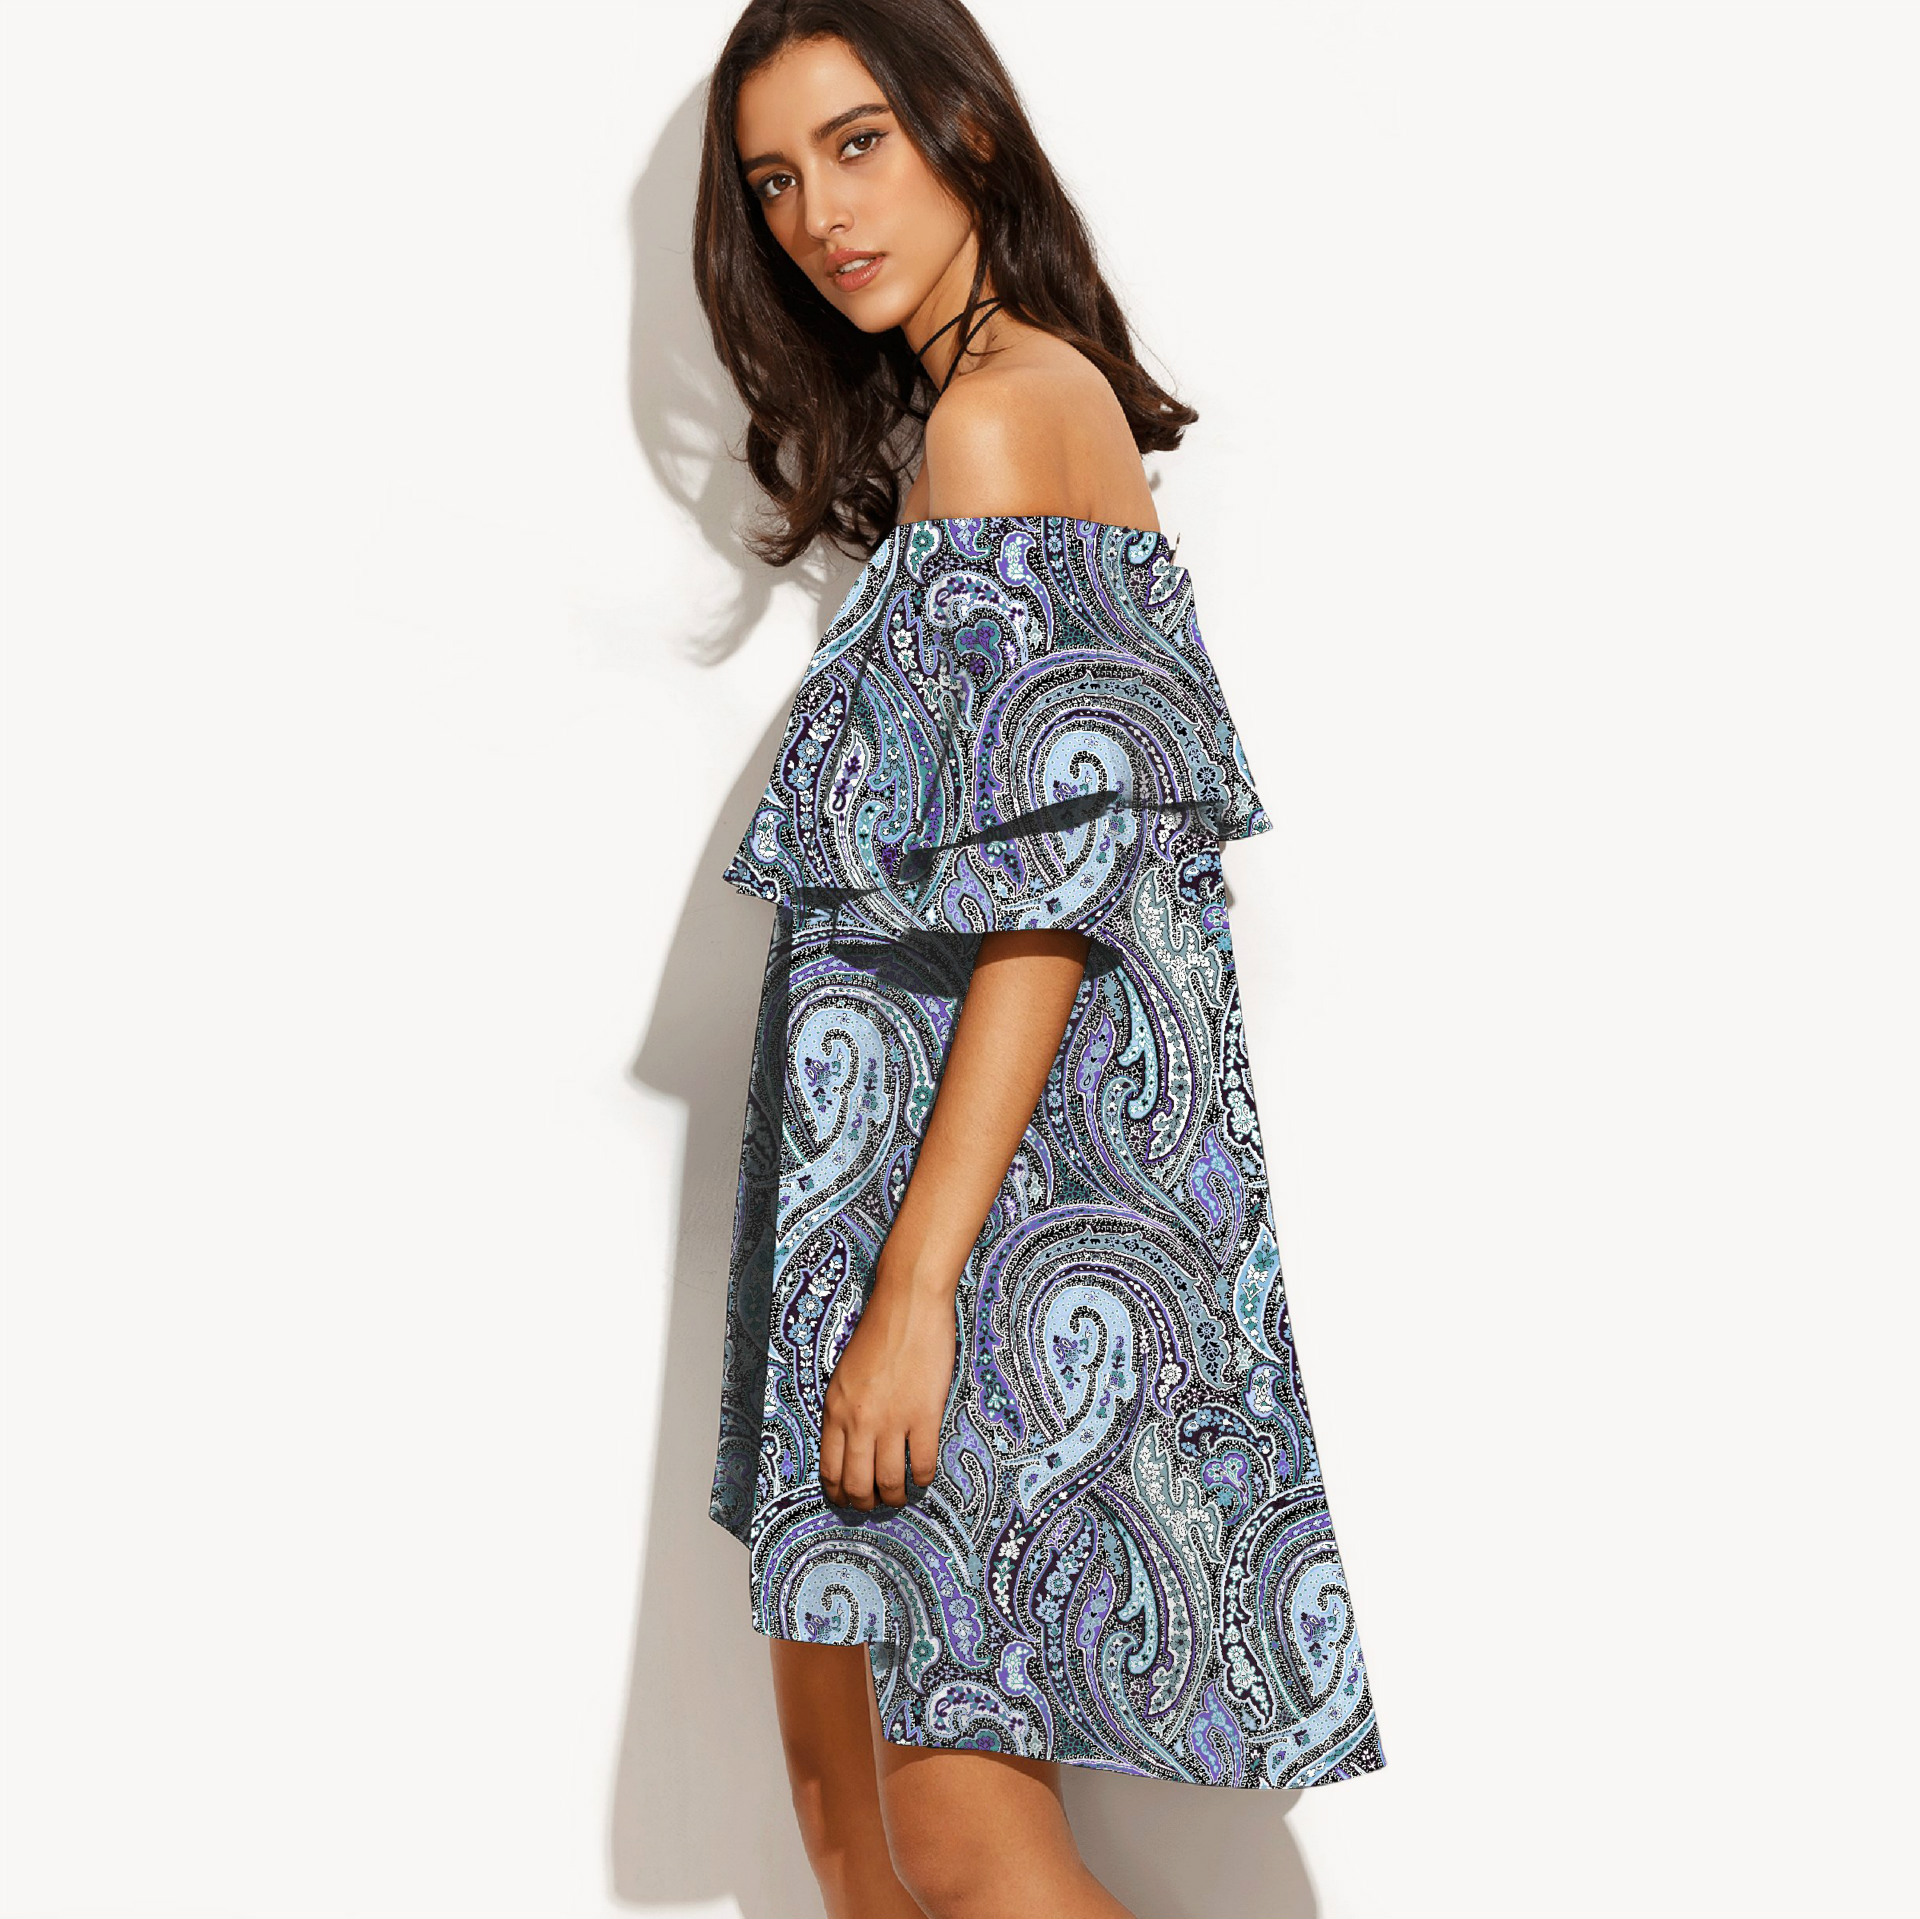 ab21e69783173 Hoffen Hot Sale Summer Dress Slash Neck Pineapple Print Party Dresses Off  Shoulder Loose Beach Dresses Vestidos Mujer 10 Colors-in Dresses from  Women's ...